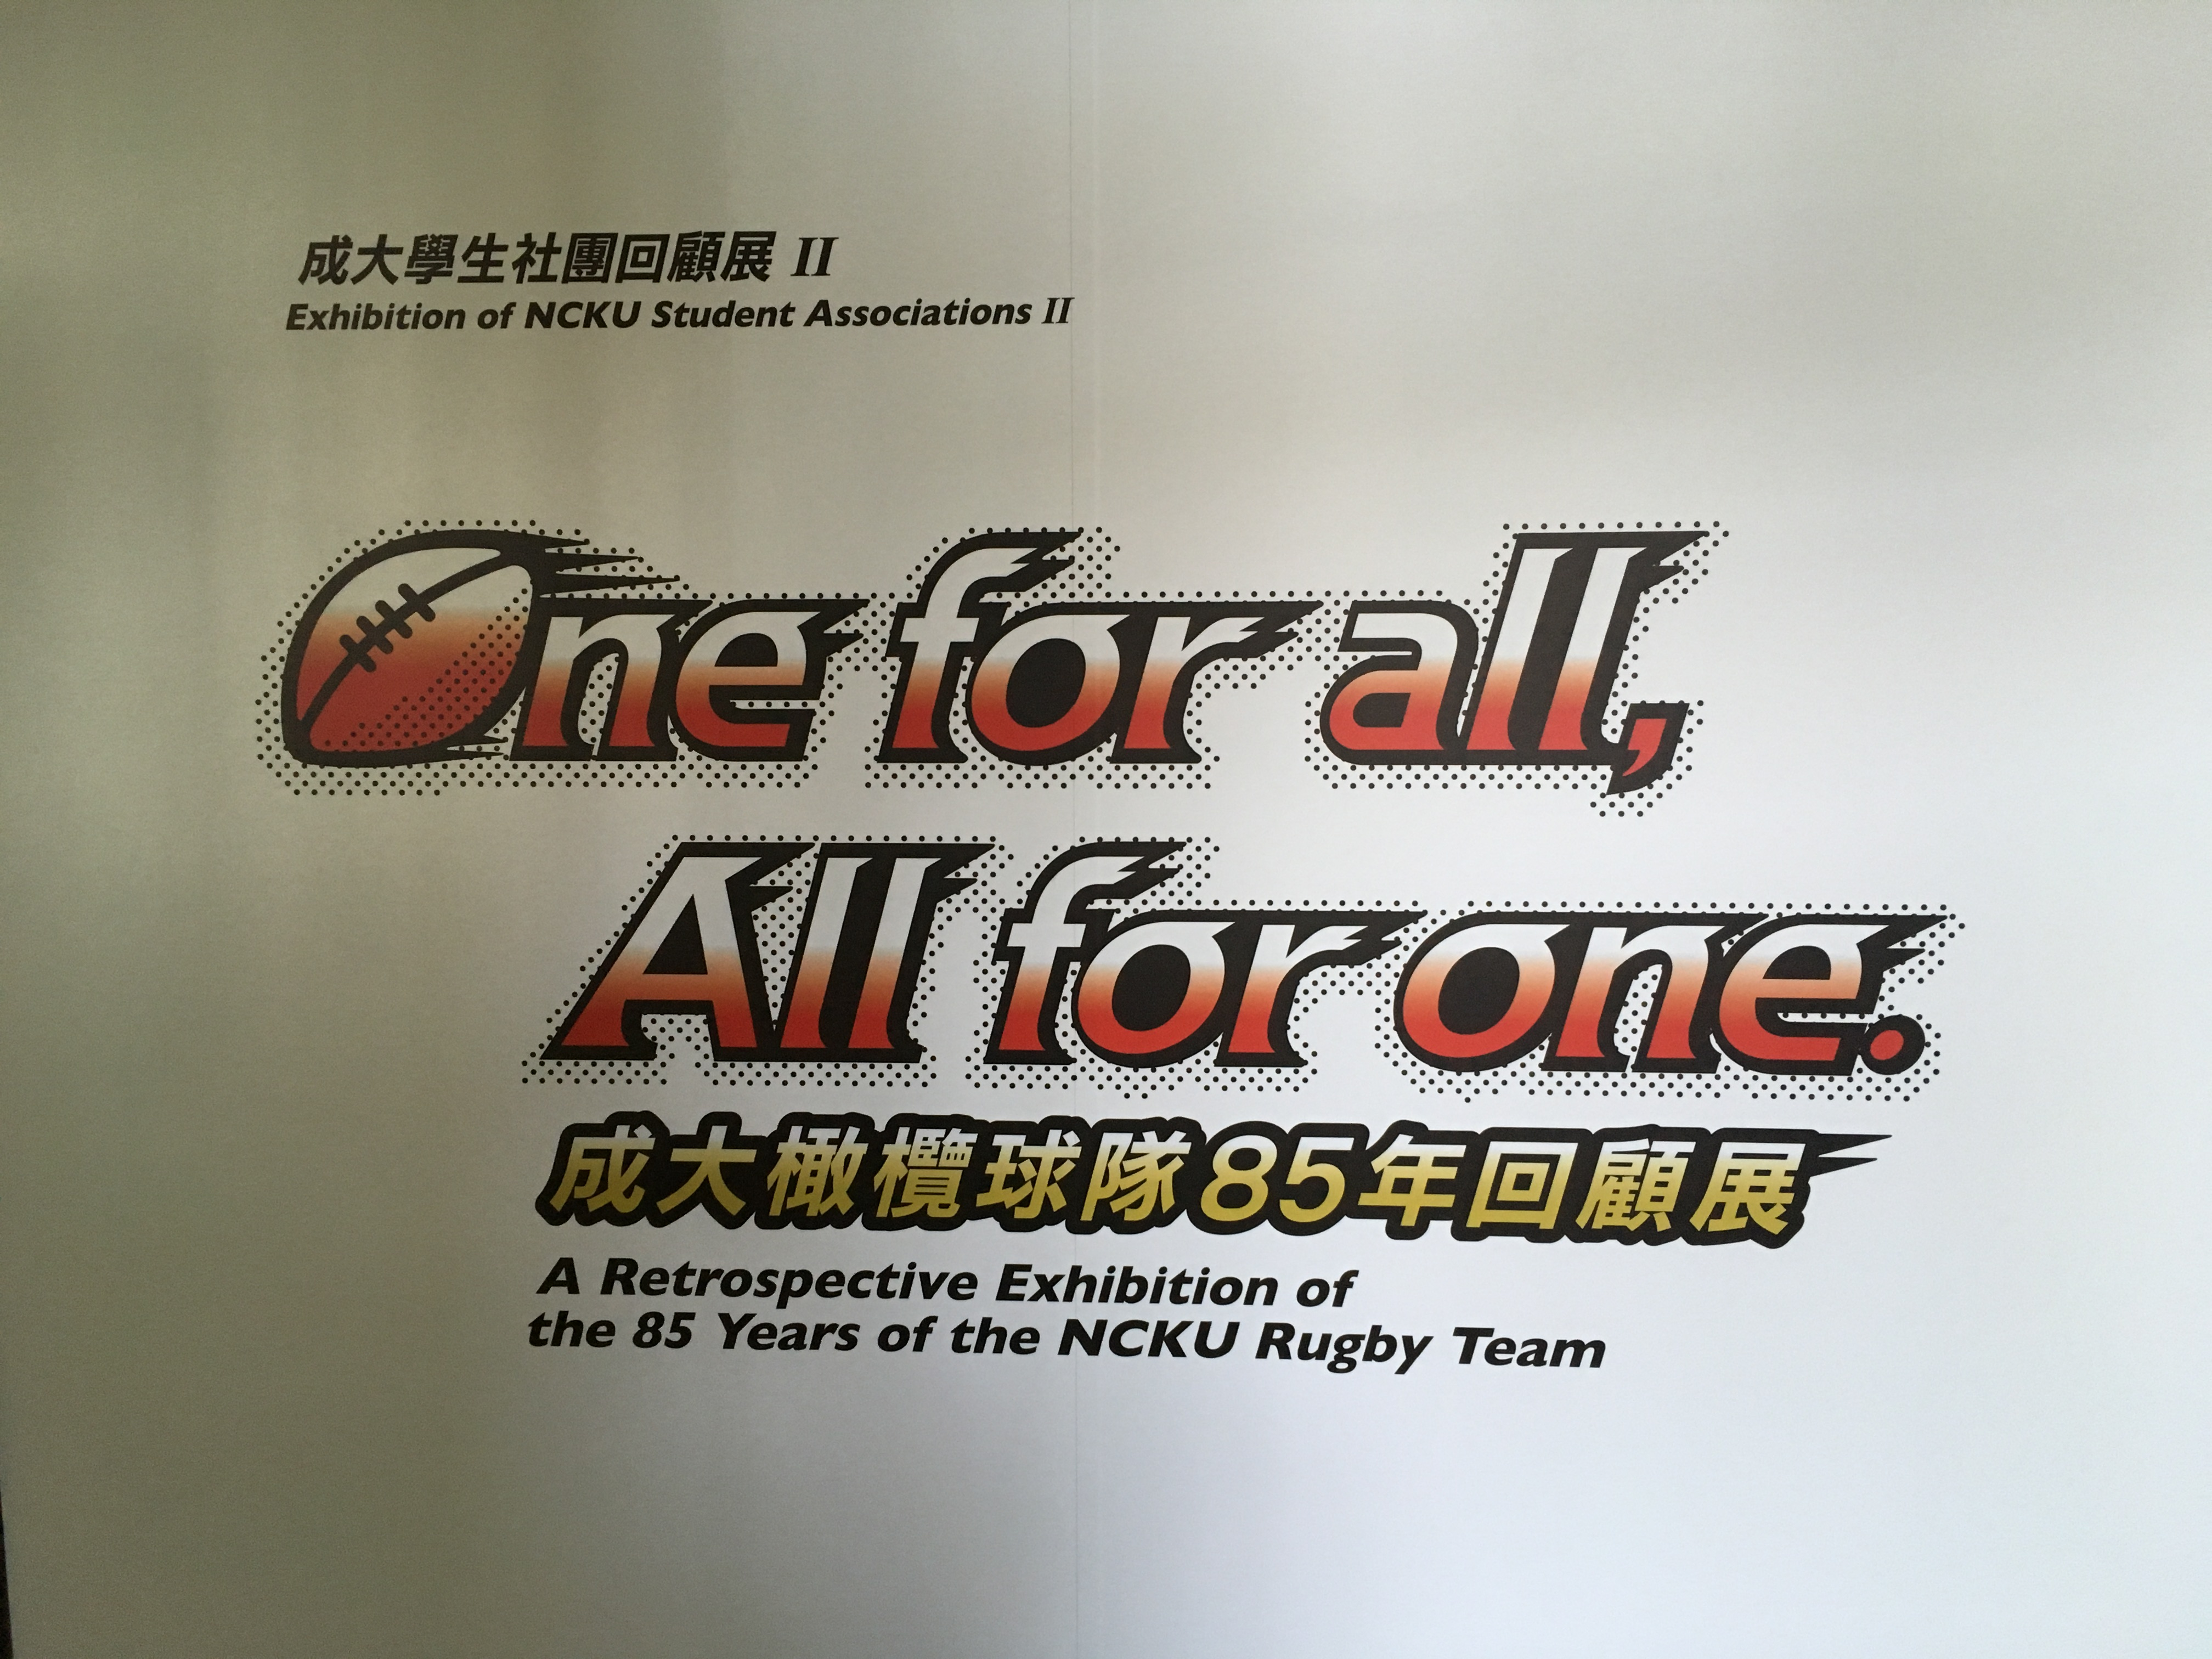 「One for all, all for one」我為成橄,成橄為我! -八十五年